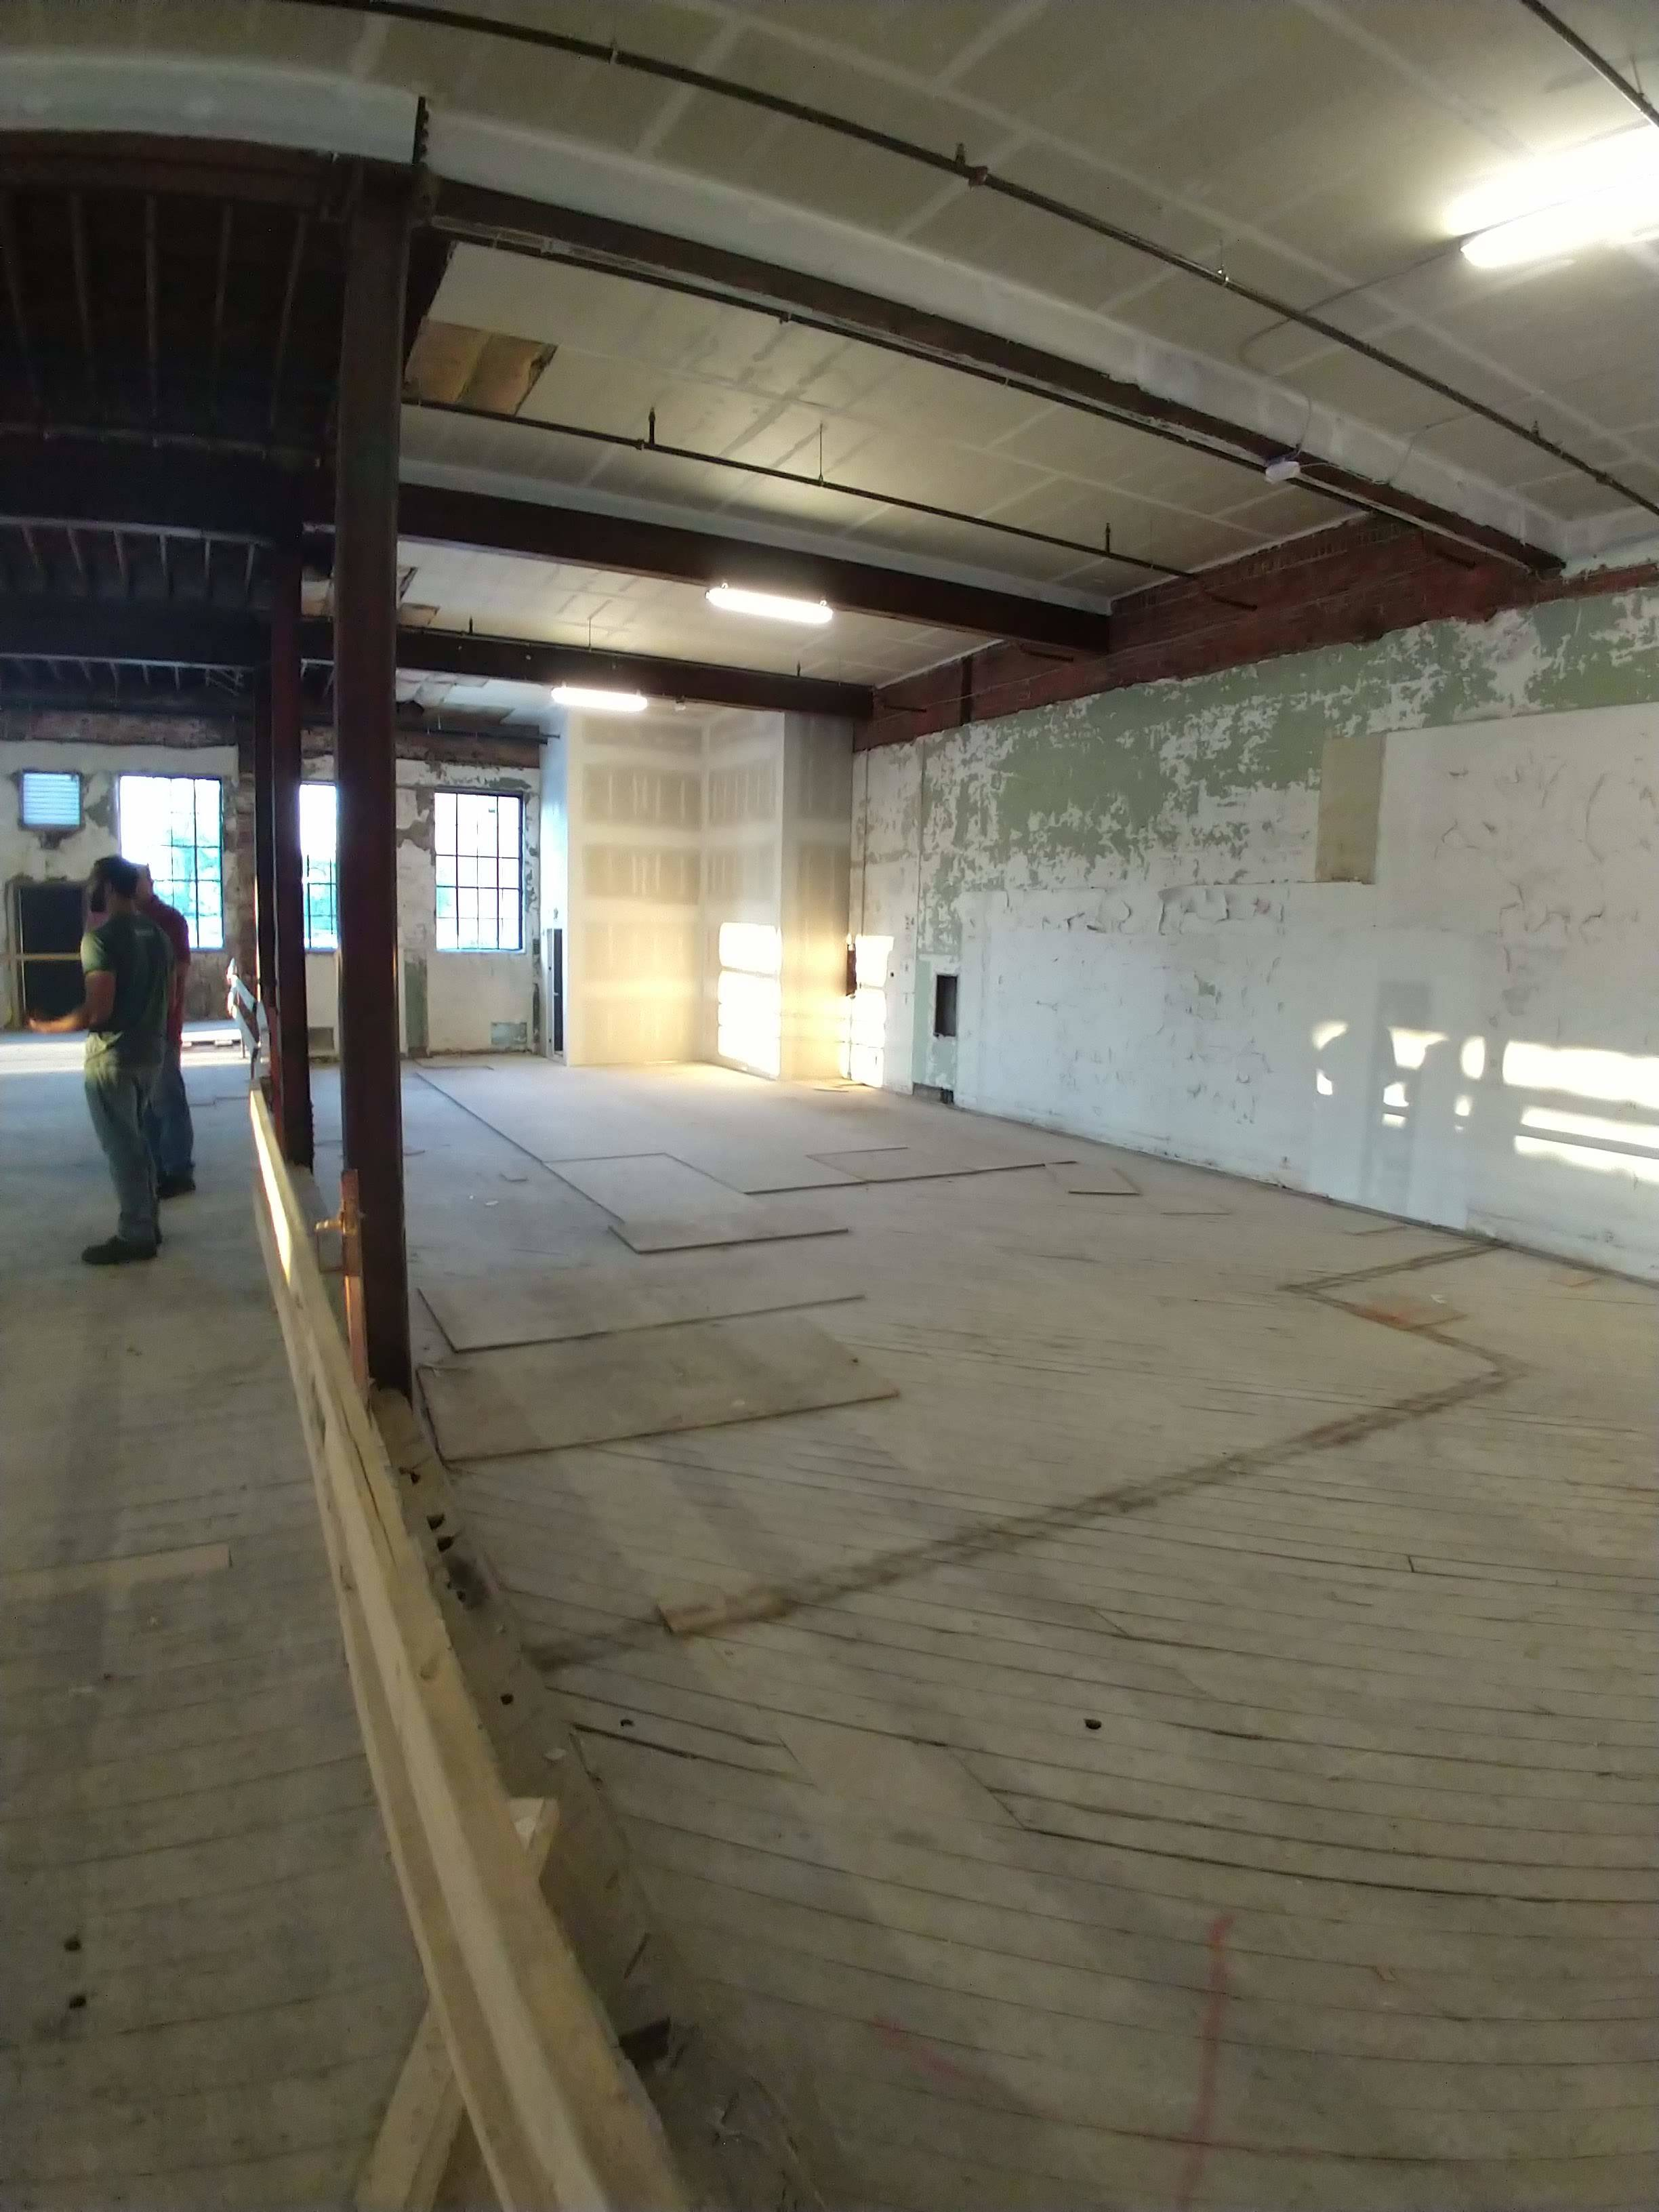 Most of this floor will be removed to make way for the 10-barrel system (Year 1 capacity of 2000 barrels) which will appear to grow out of the basement. The area will be enclosed by viewing windows so patrons in the taproom can peer down into the production area.